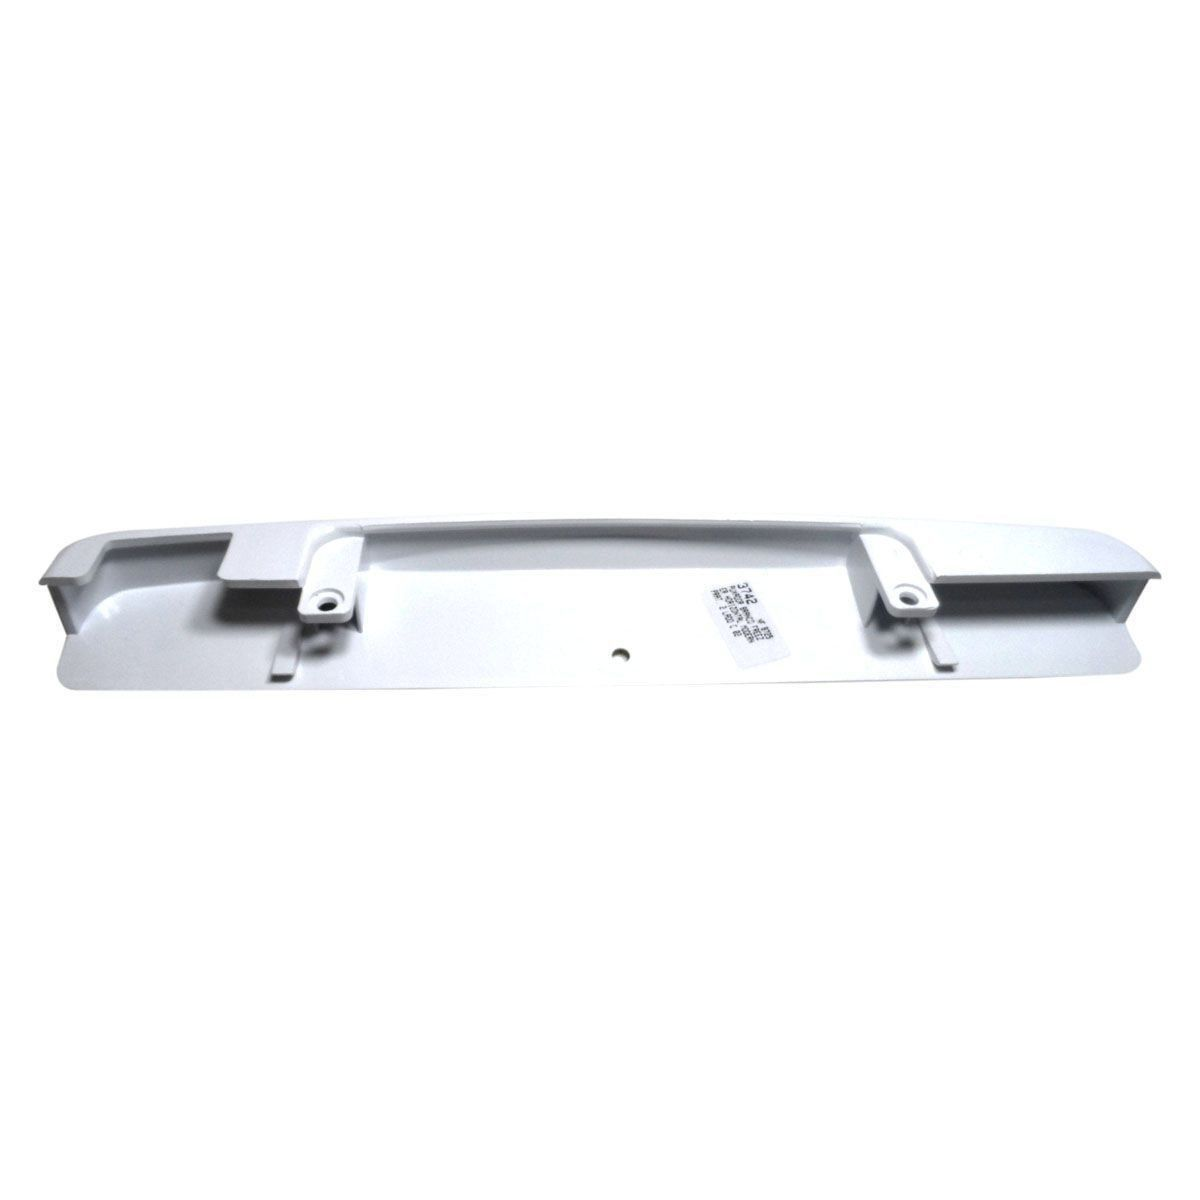 PUXADOR TAMPA FREEZER ELECTROLUX MODERNO 77103899